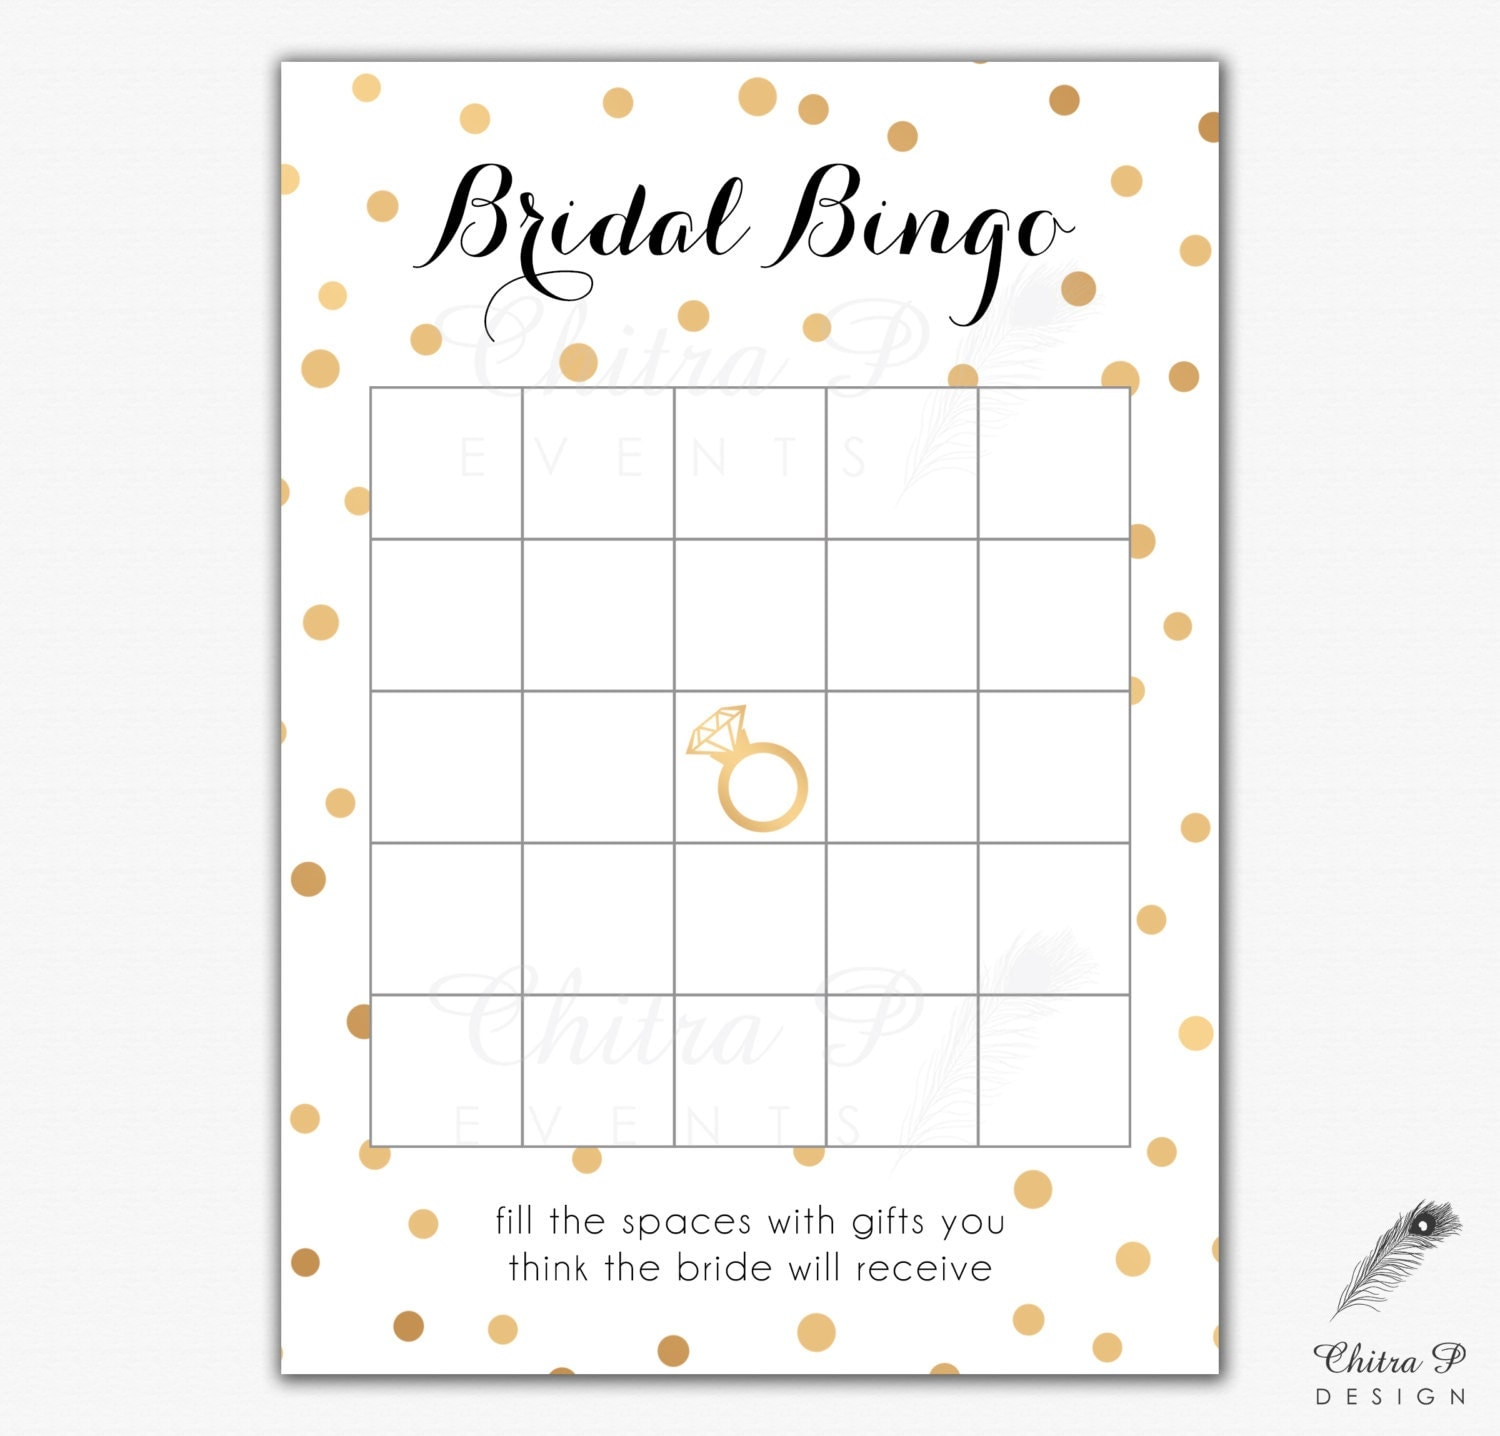 Clever image with regard to bridal bingo printable